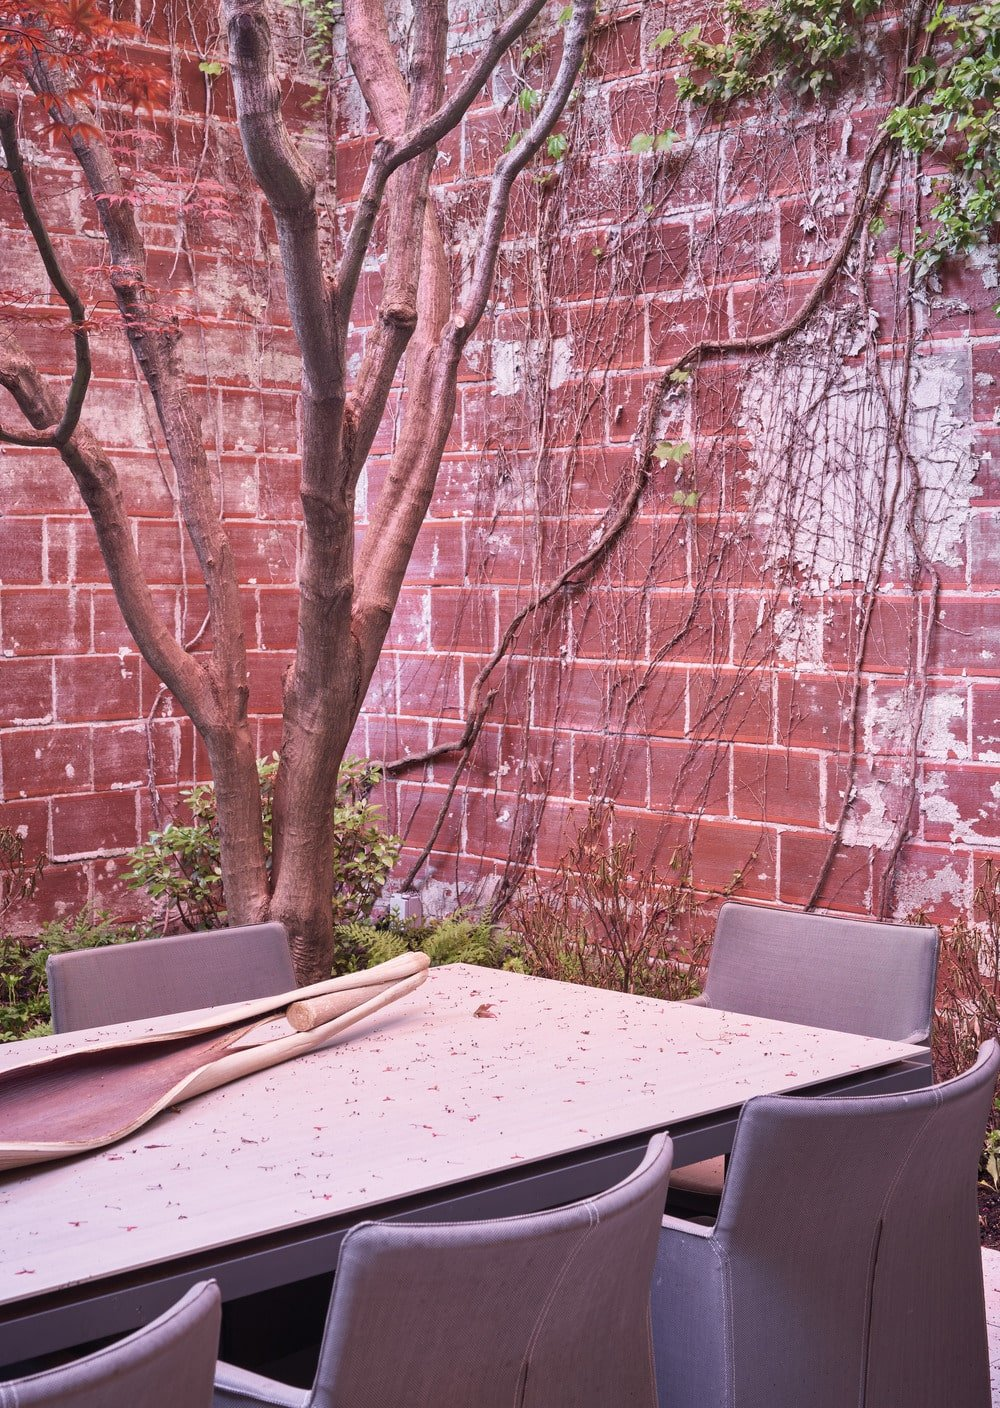 This small outdoor area is adorned by the red brick walls.